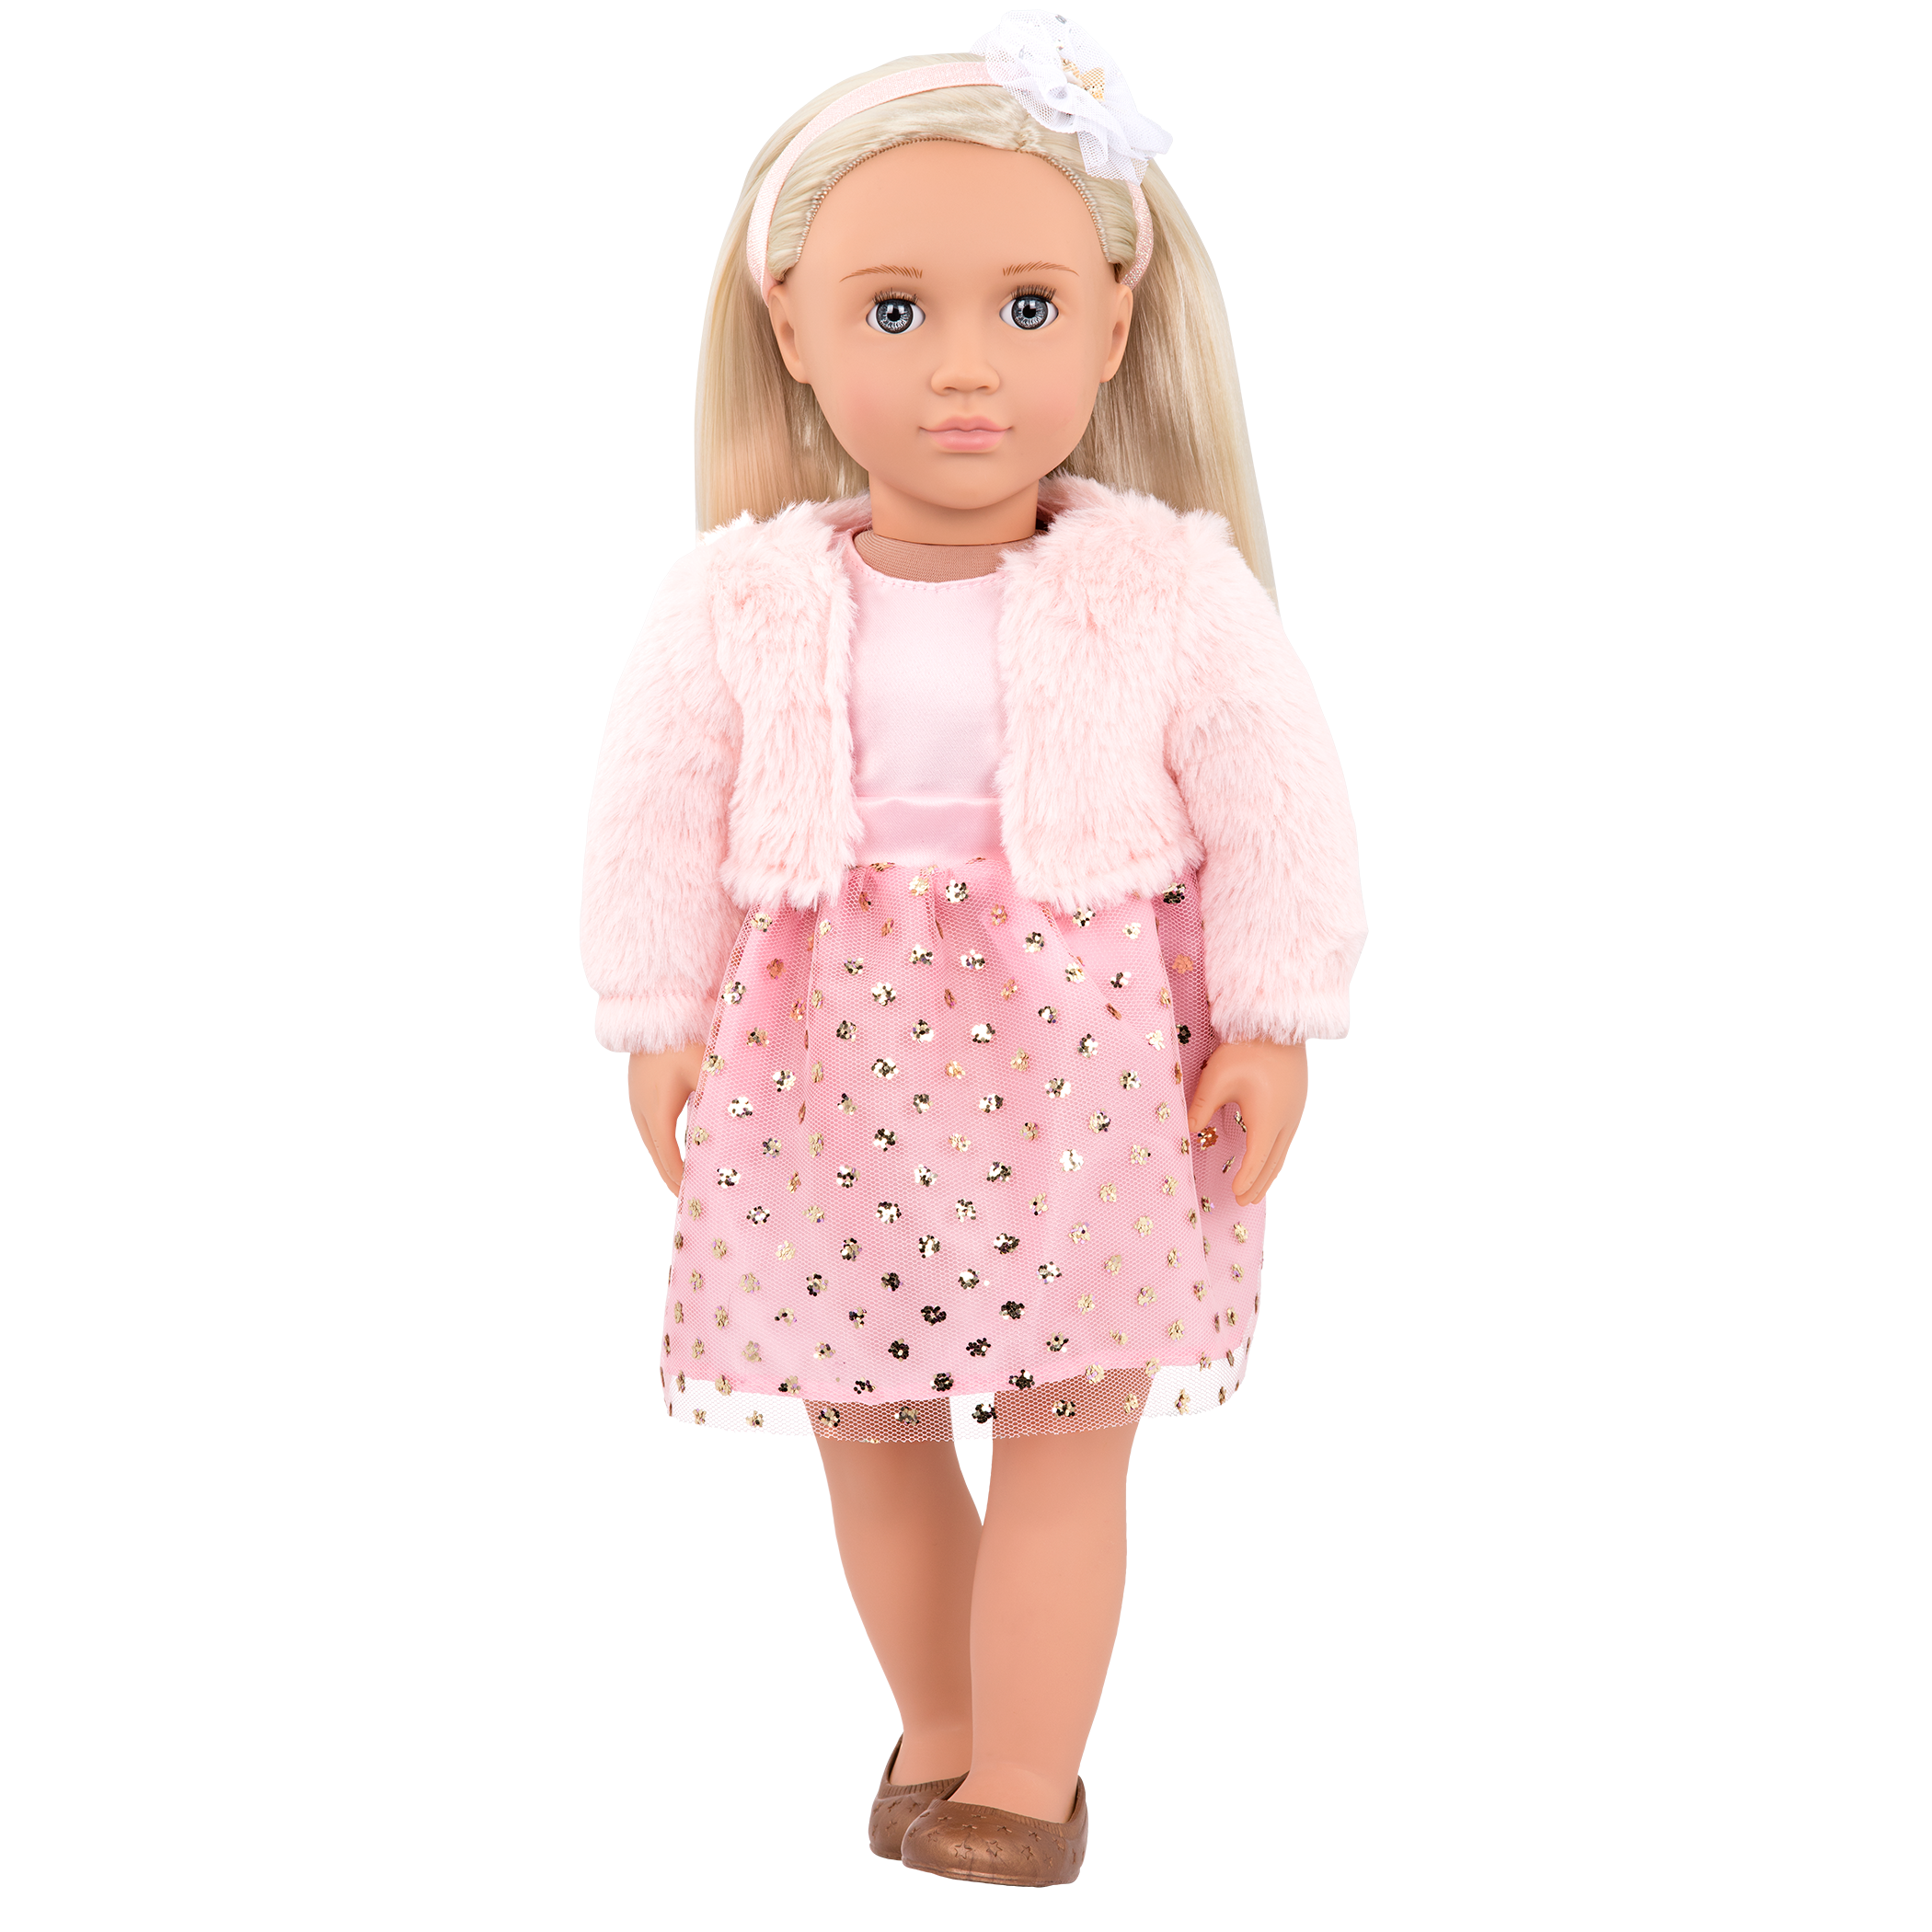 Millie Regular 18-inch Doll